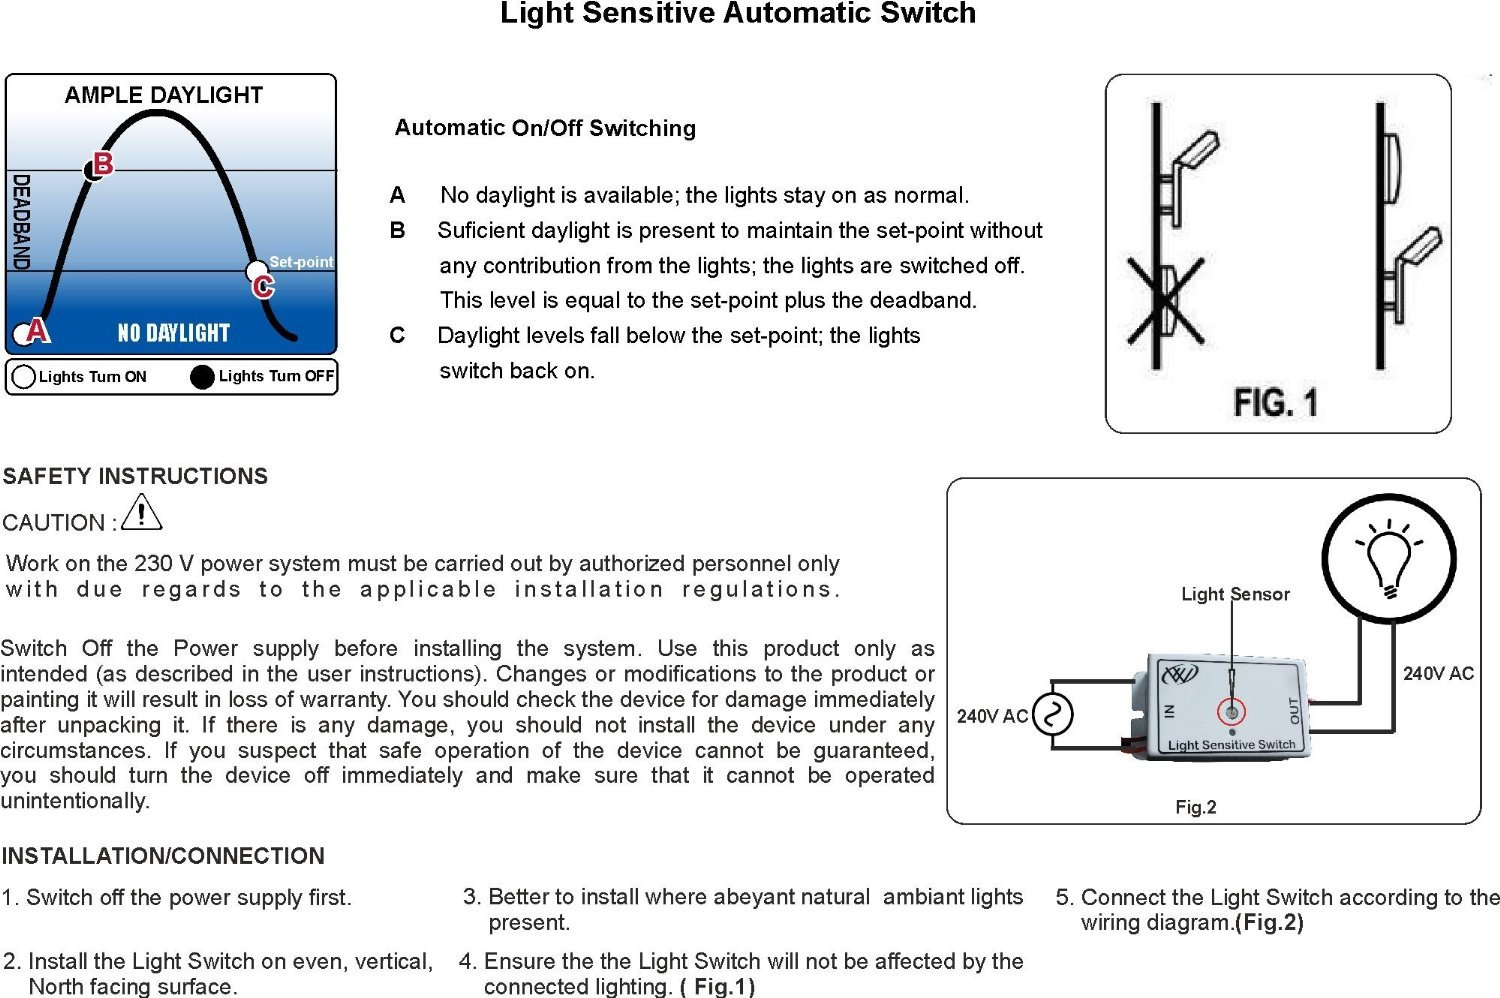 Day Night Switch Light Sensor Automatic Home Auto Gate Wiring Diagram Malaysia Automation